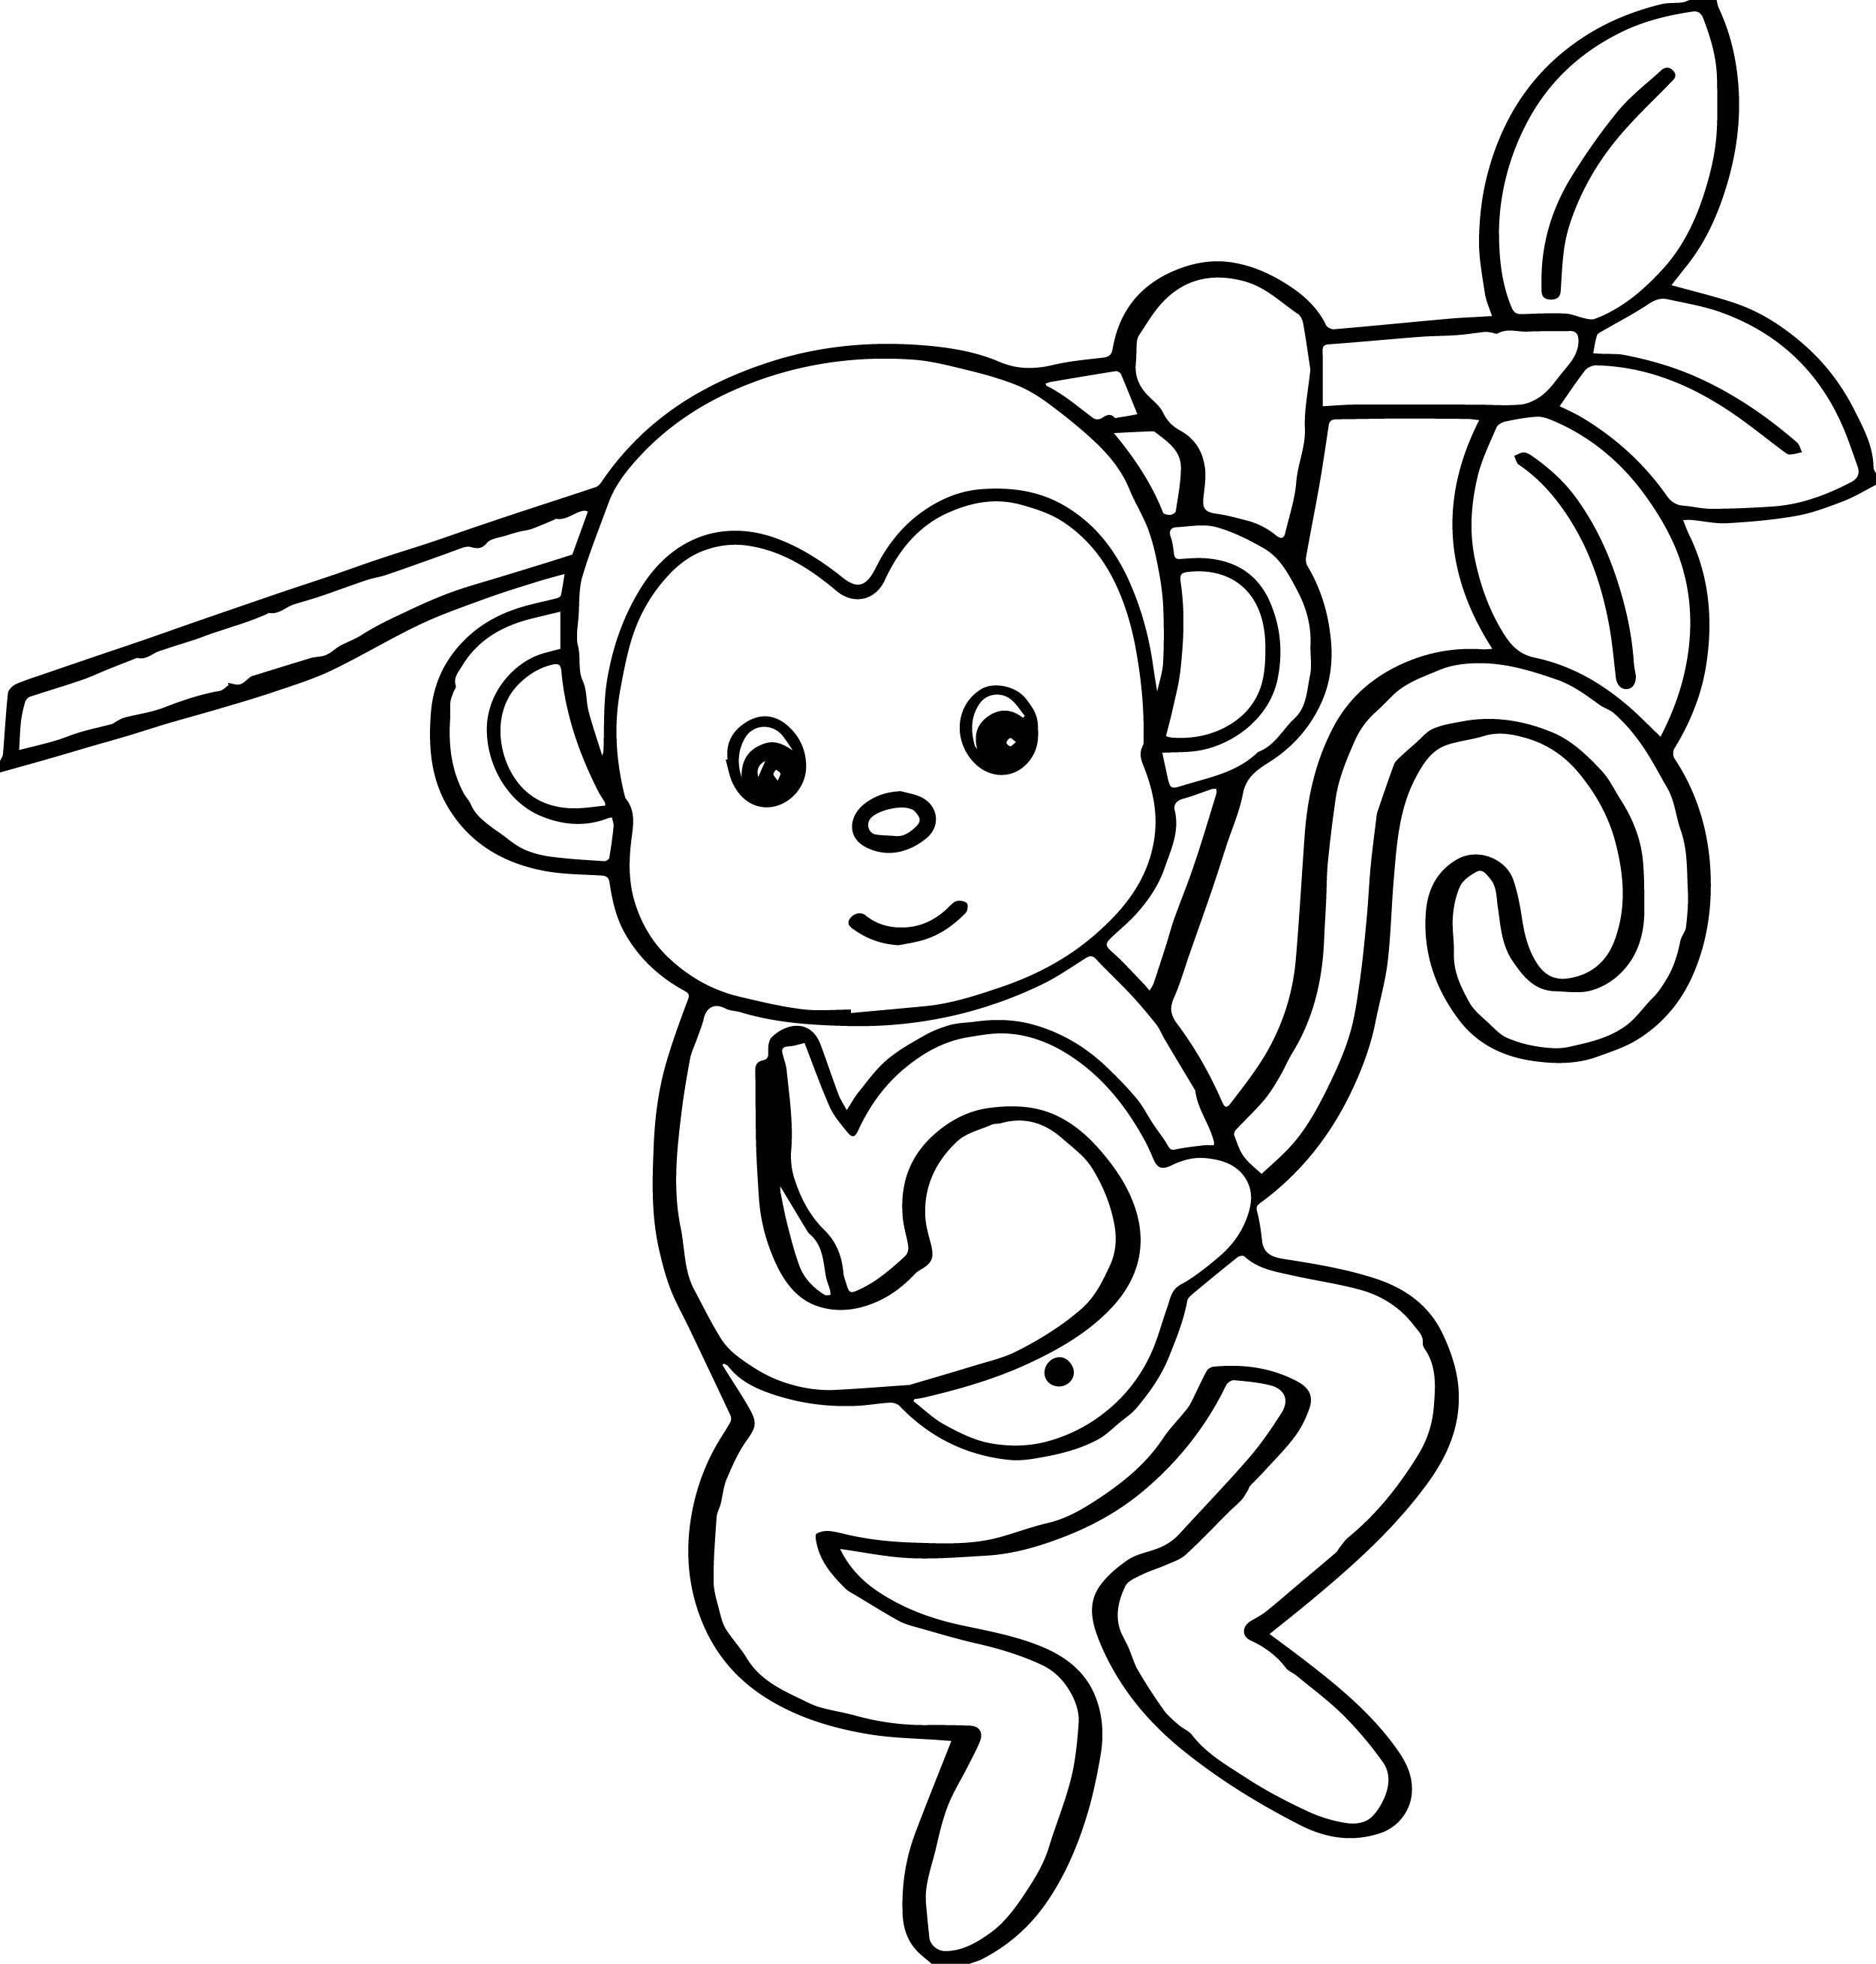 2500x2617 Perfect Monkey Coloring Pages To Print Best Ideas